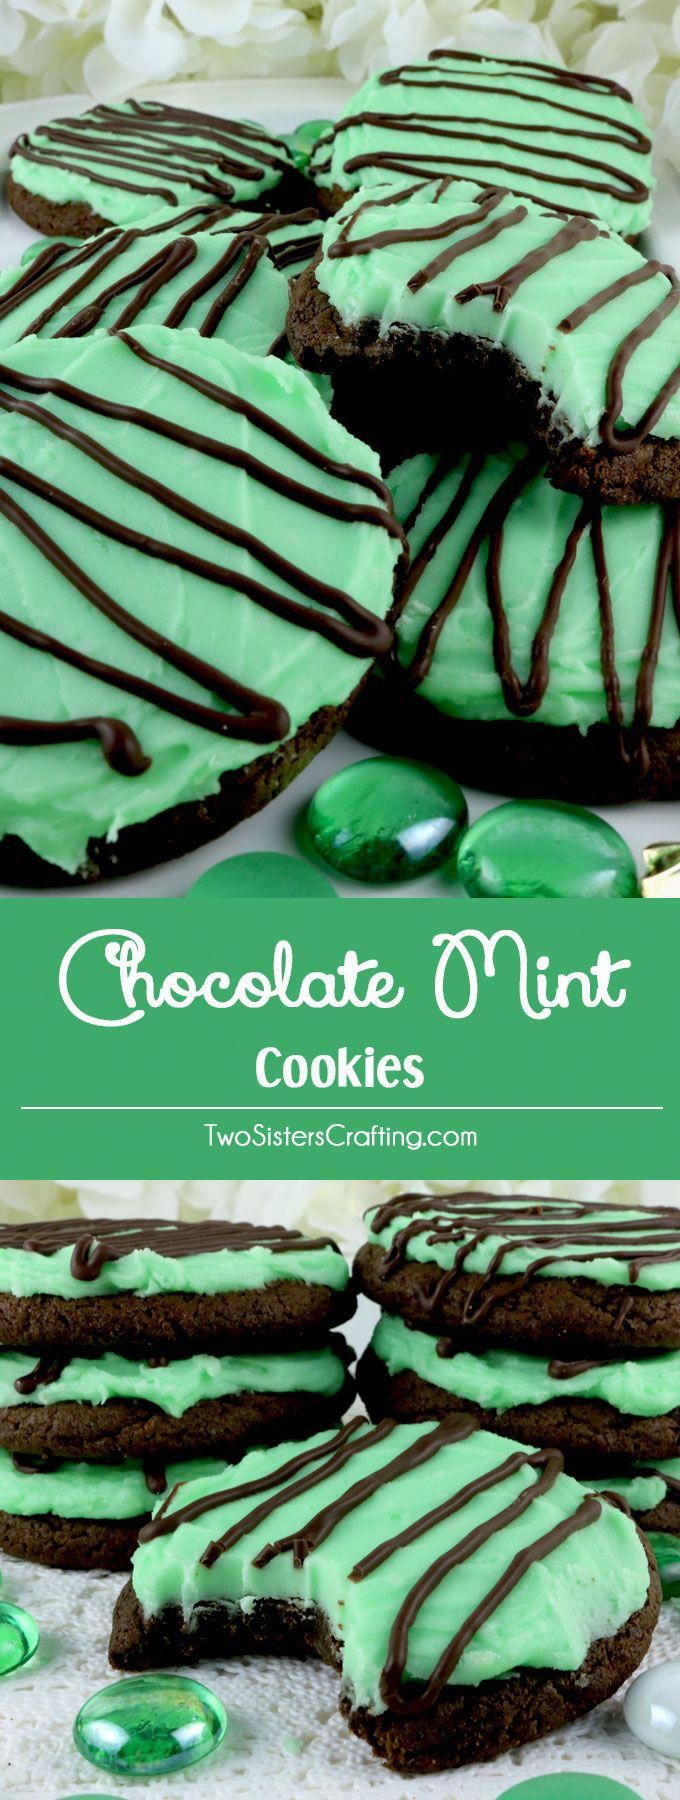 Chocolate Mint Cookies - sweet, chocolatey and covered with our deliciously creamy Mint Buttercream Frosting. These yummy frosted cookies are easy to make and taste just like a Thin Mint Cookie or a bowl of Chocolate Mint Ice Cream. Pin this yummy Cookie Recipe for later and and follow us for more great Cookie Ideas. #chocolatefrosting